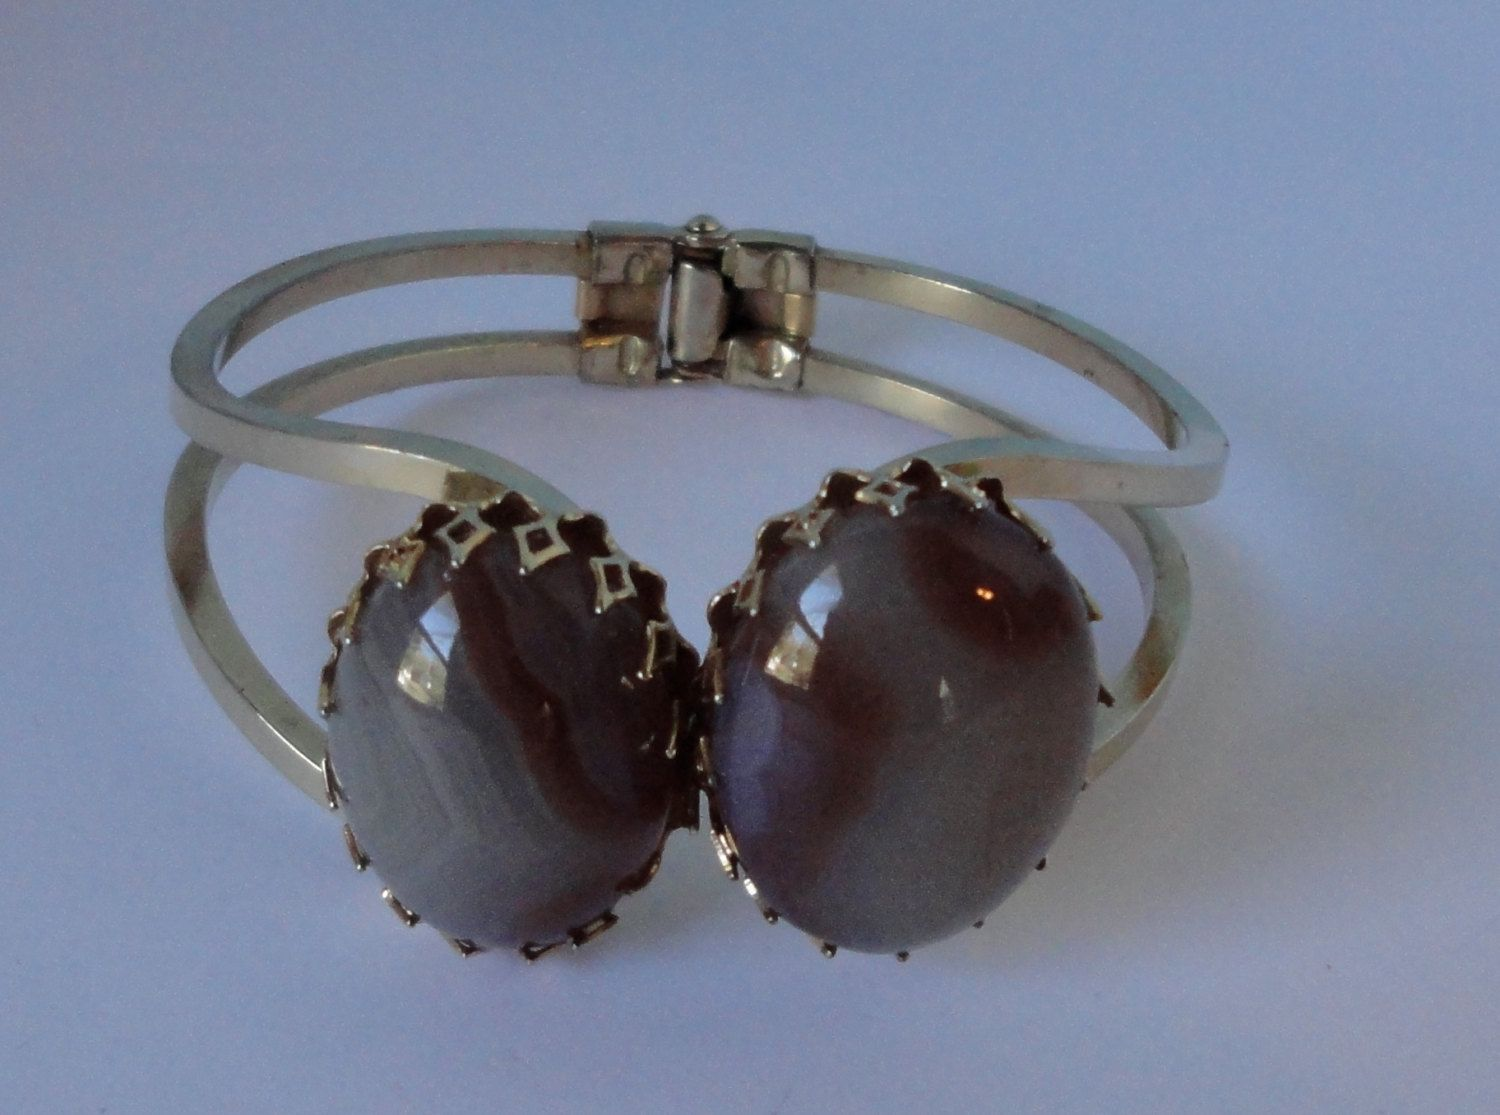 Vintage gold tone metal Clamper Bracelet with 2 Agate/Jasper cabs by Cosasraras on Etsy